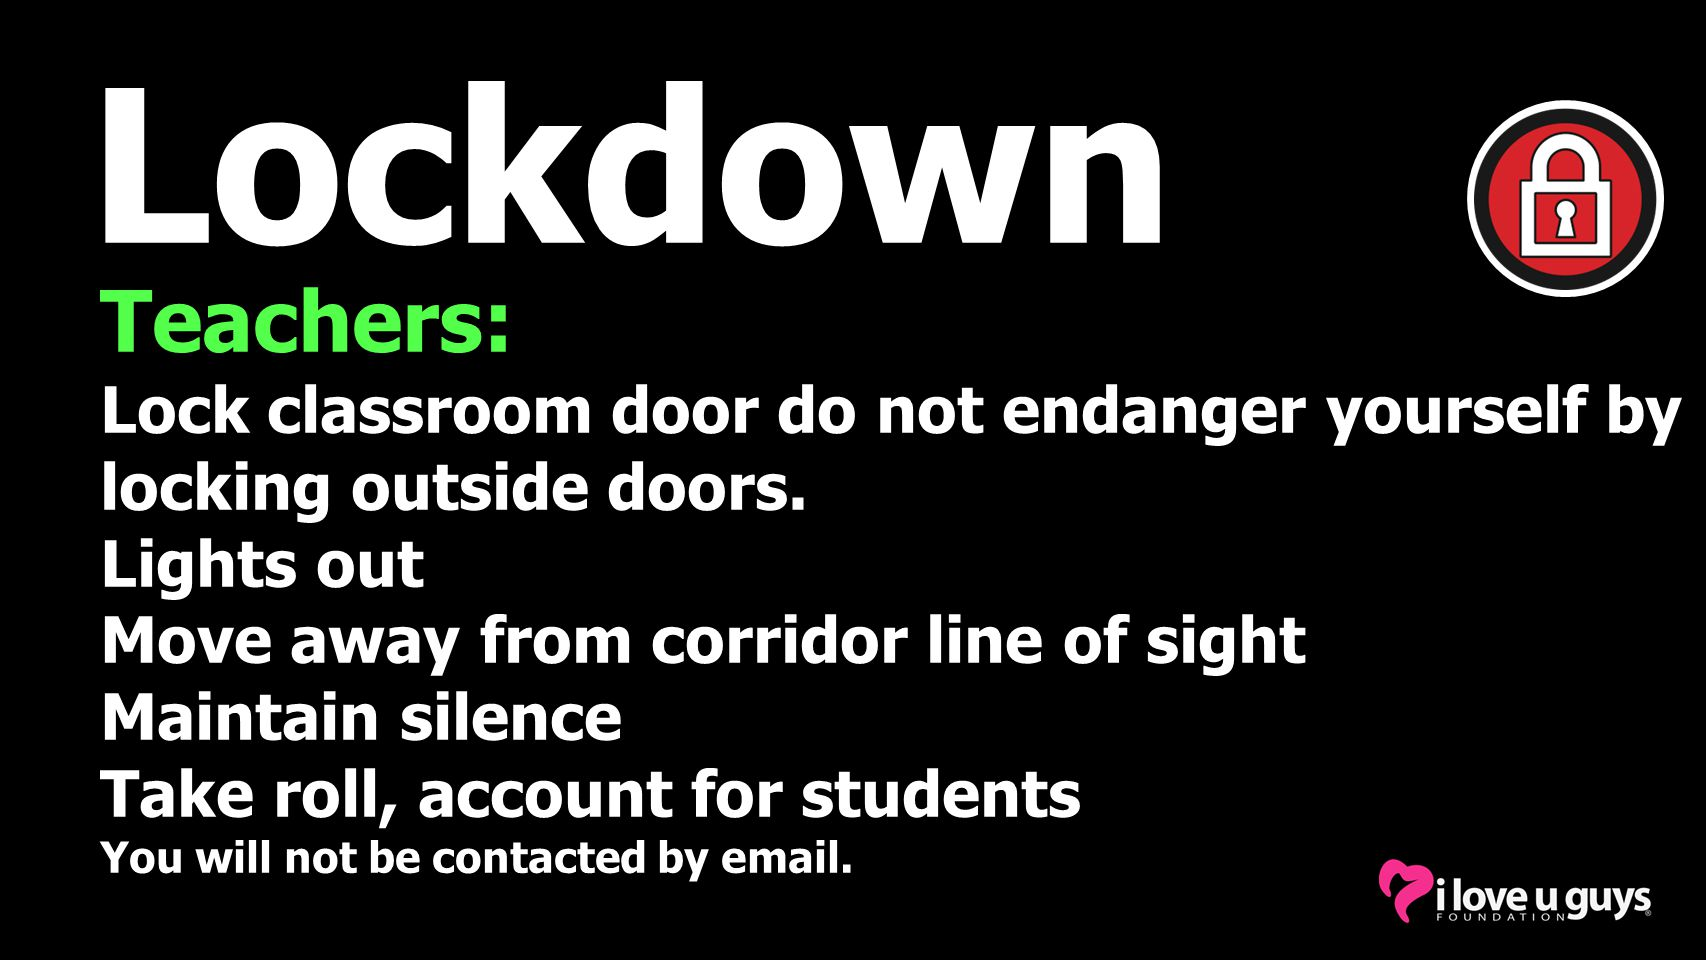 Lockdown Teachers: Lock classroom door do not endanger yourself by locking outside doors.